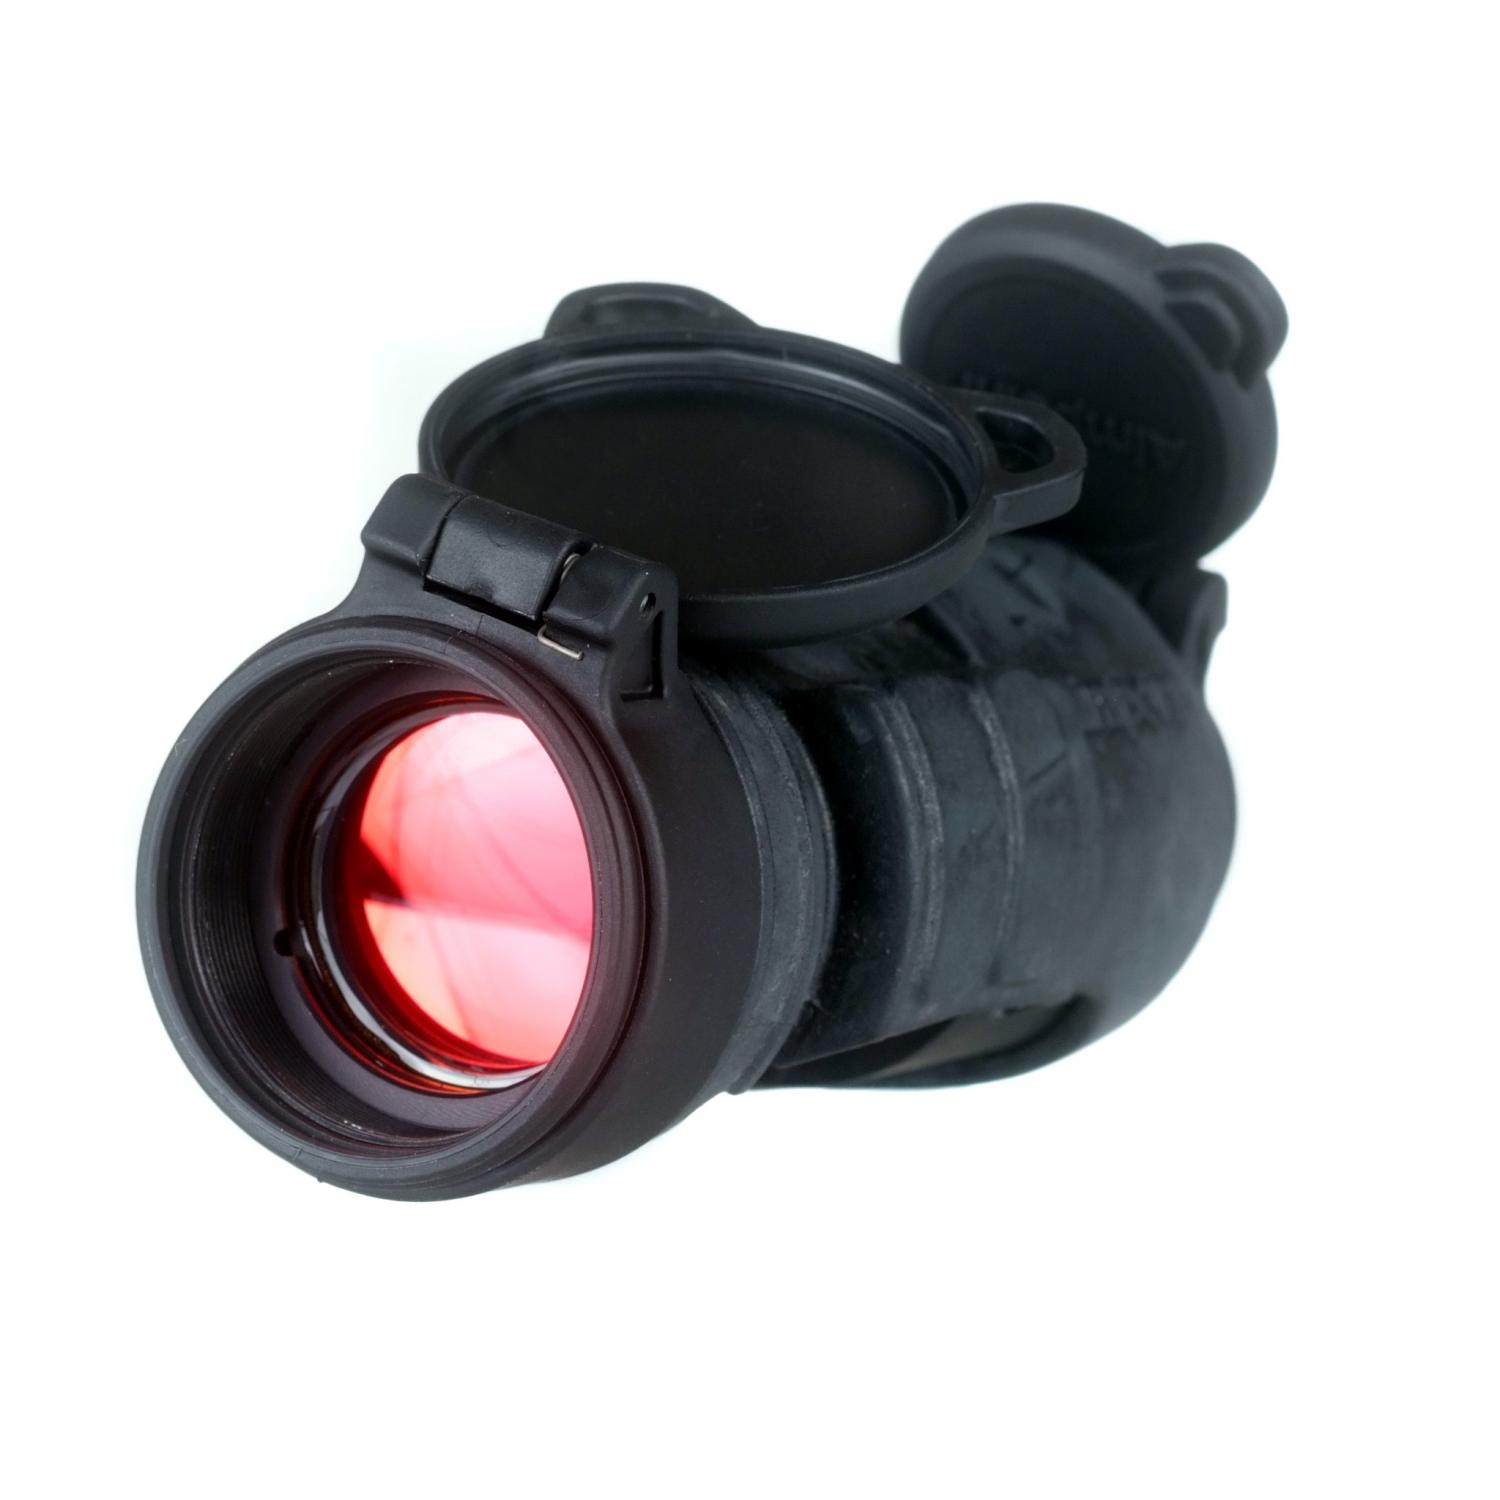 Picture of Aimpoint CompML3 Red Dot 2 MOA Sight Riflescope - Black - 11416